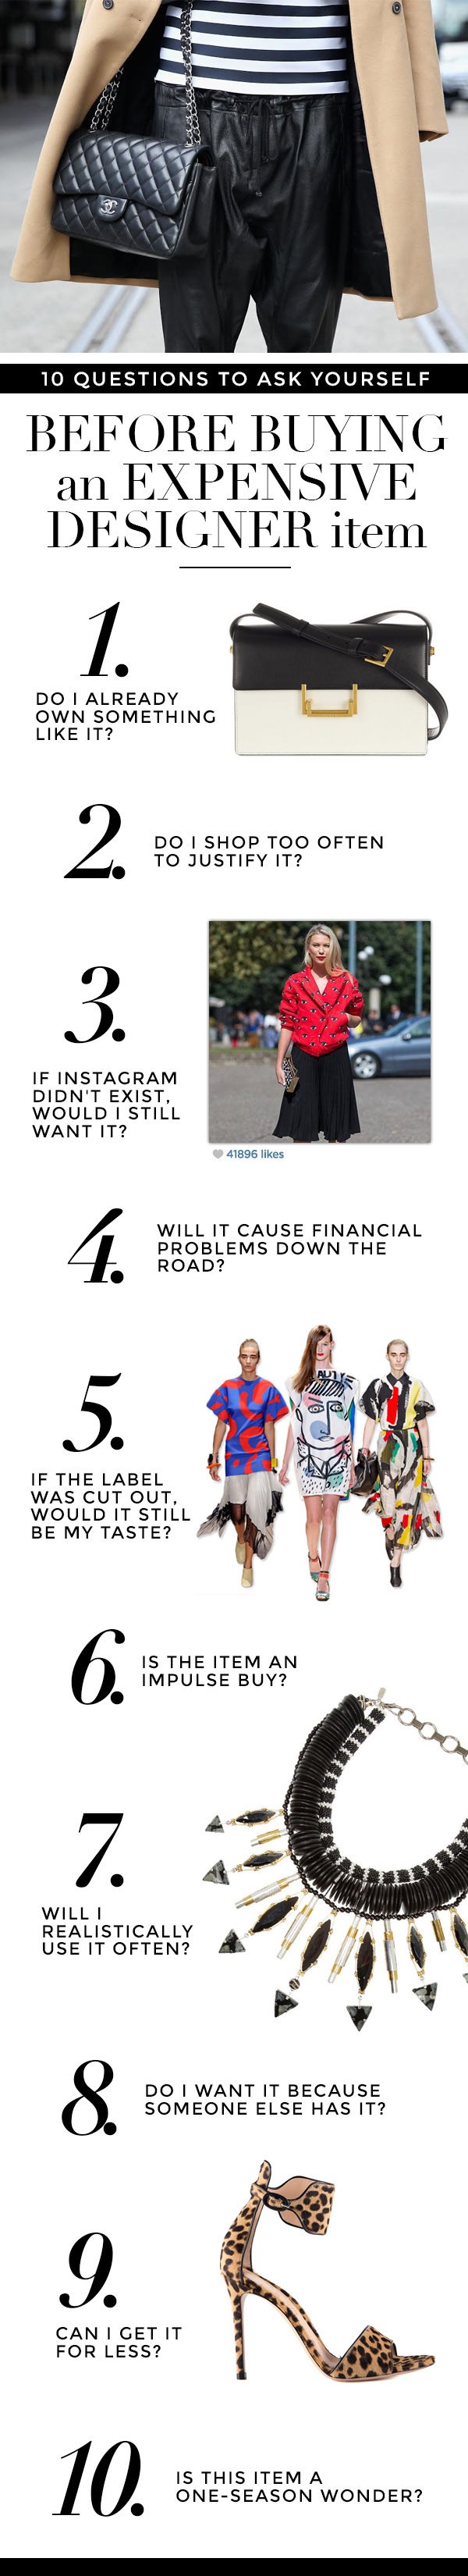 10-Questions-Before-Buying-Designer-Items-PINTEREST (1)